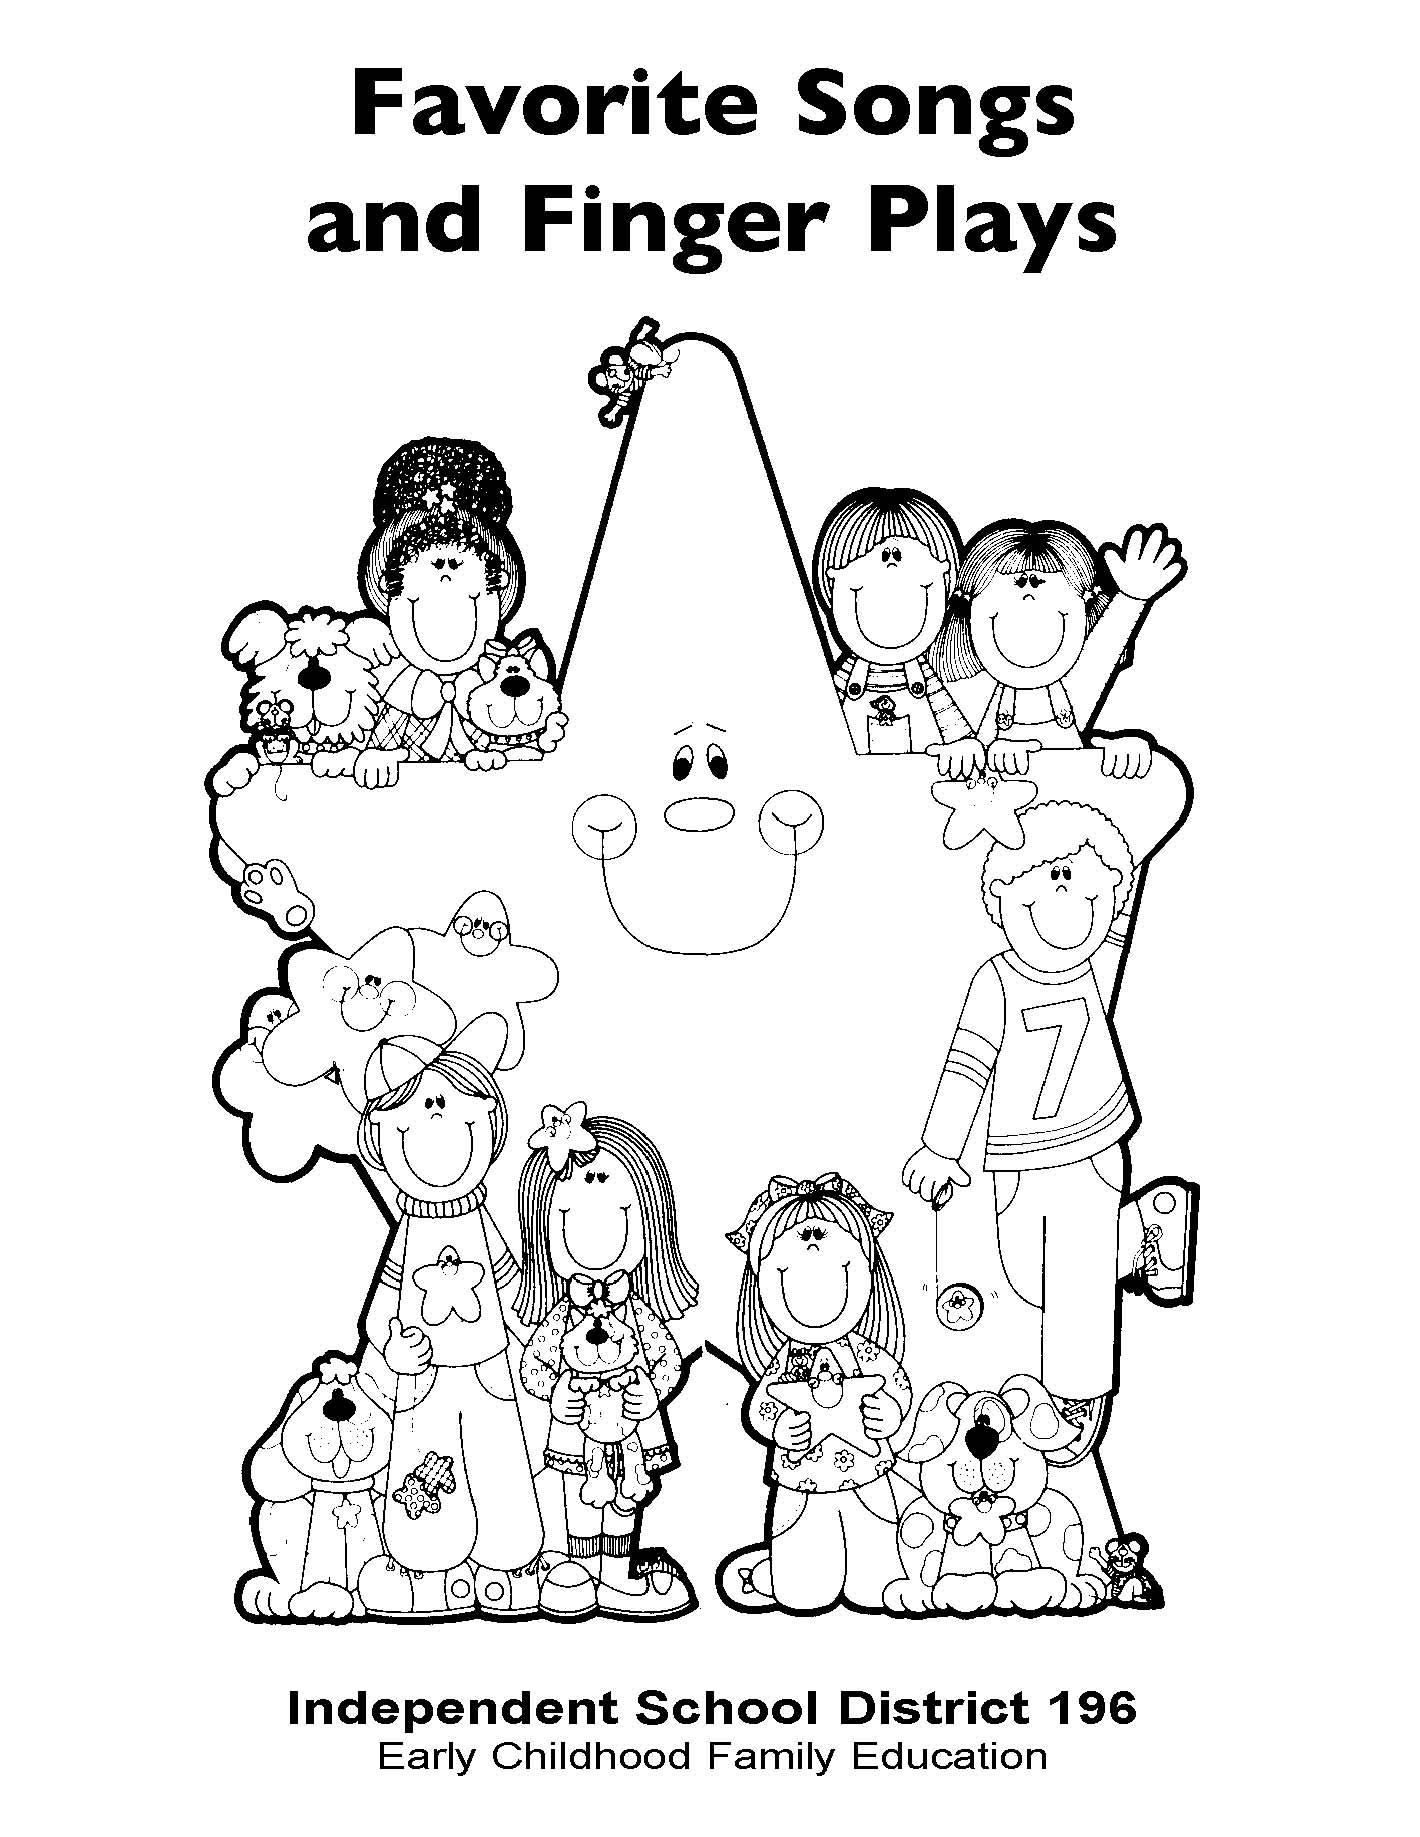 Favorite Songs and Fingerplays, a fabulous resource that